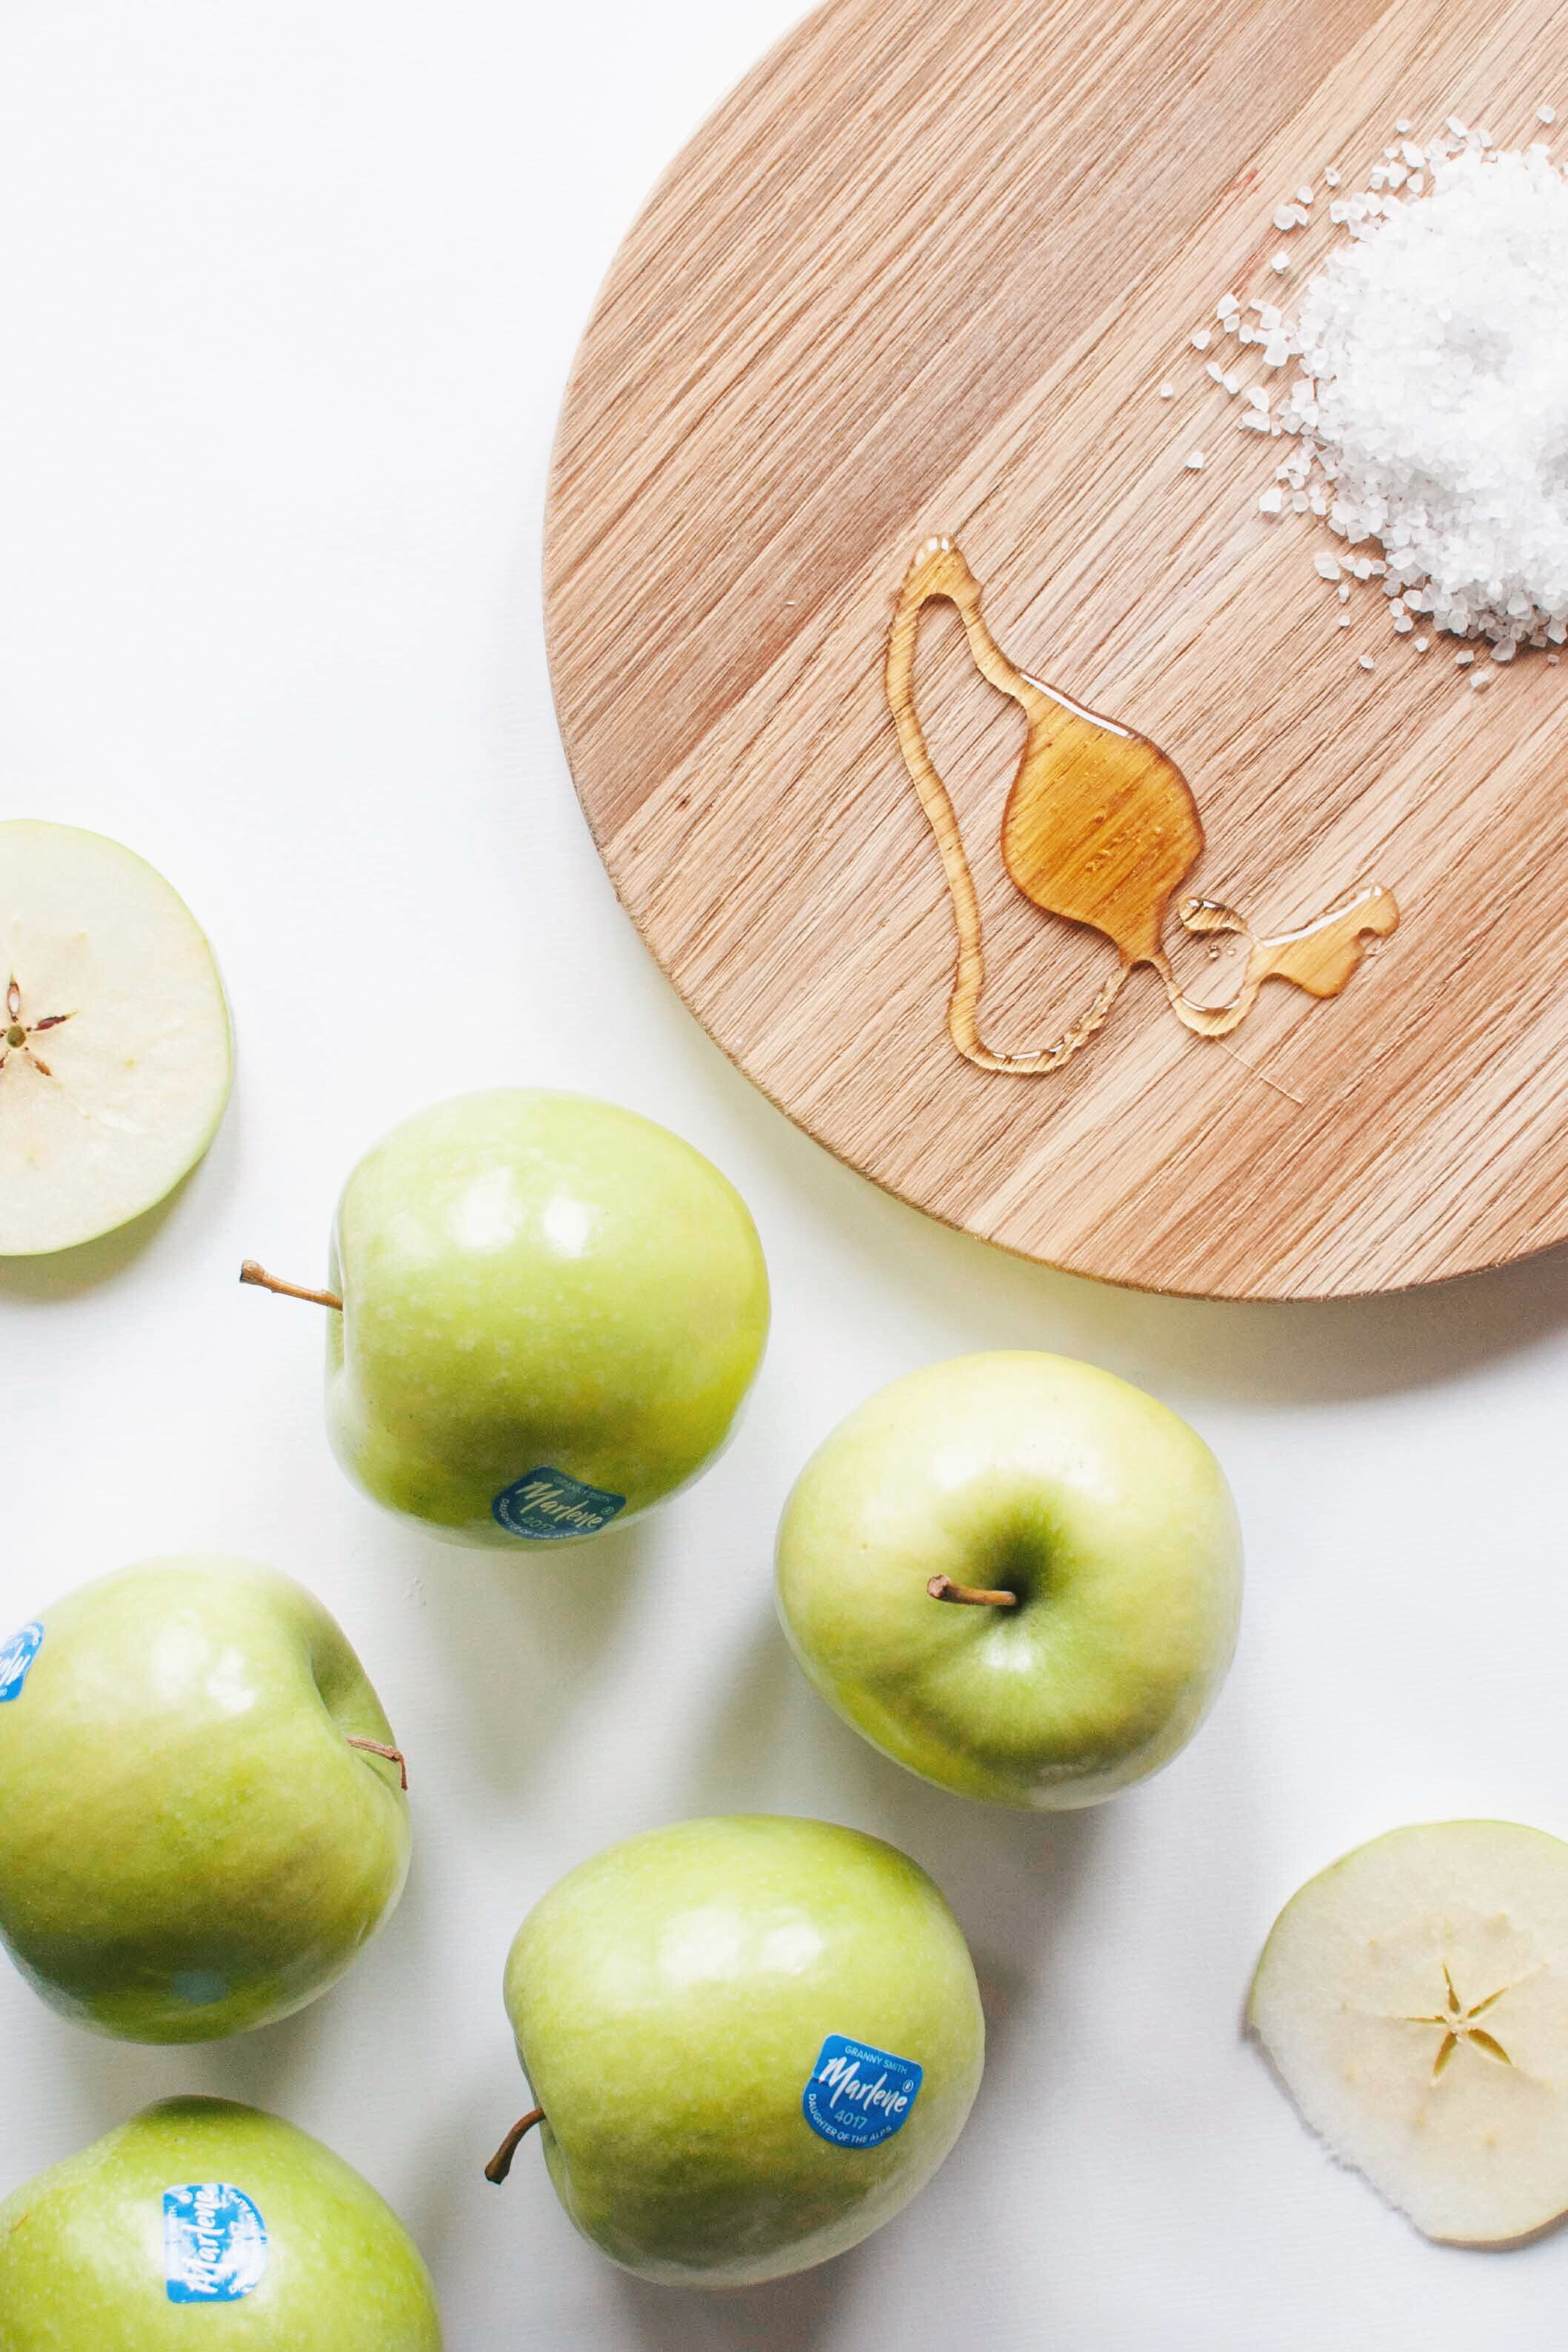 DIY marlene apple skin care appel huid